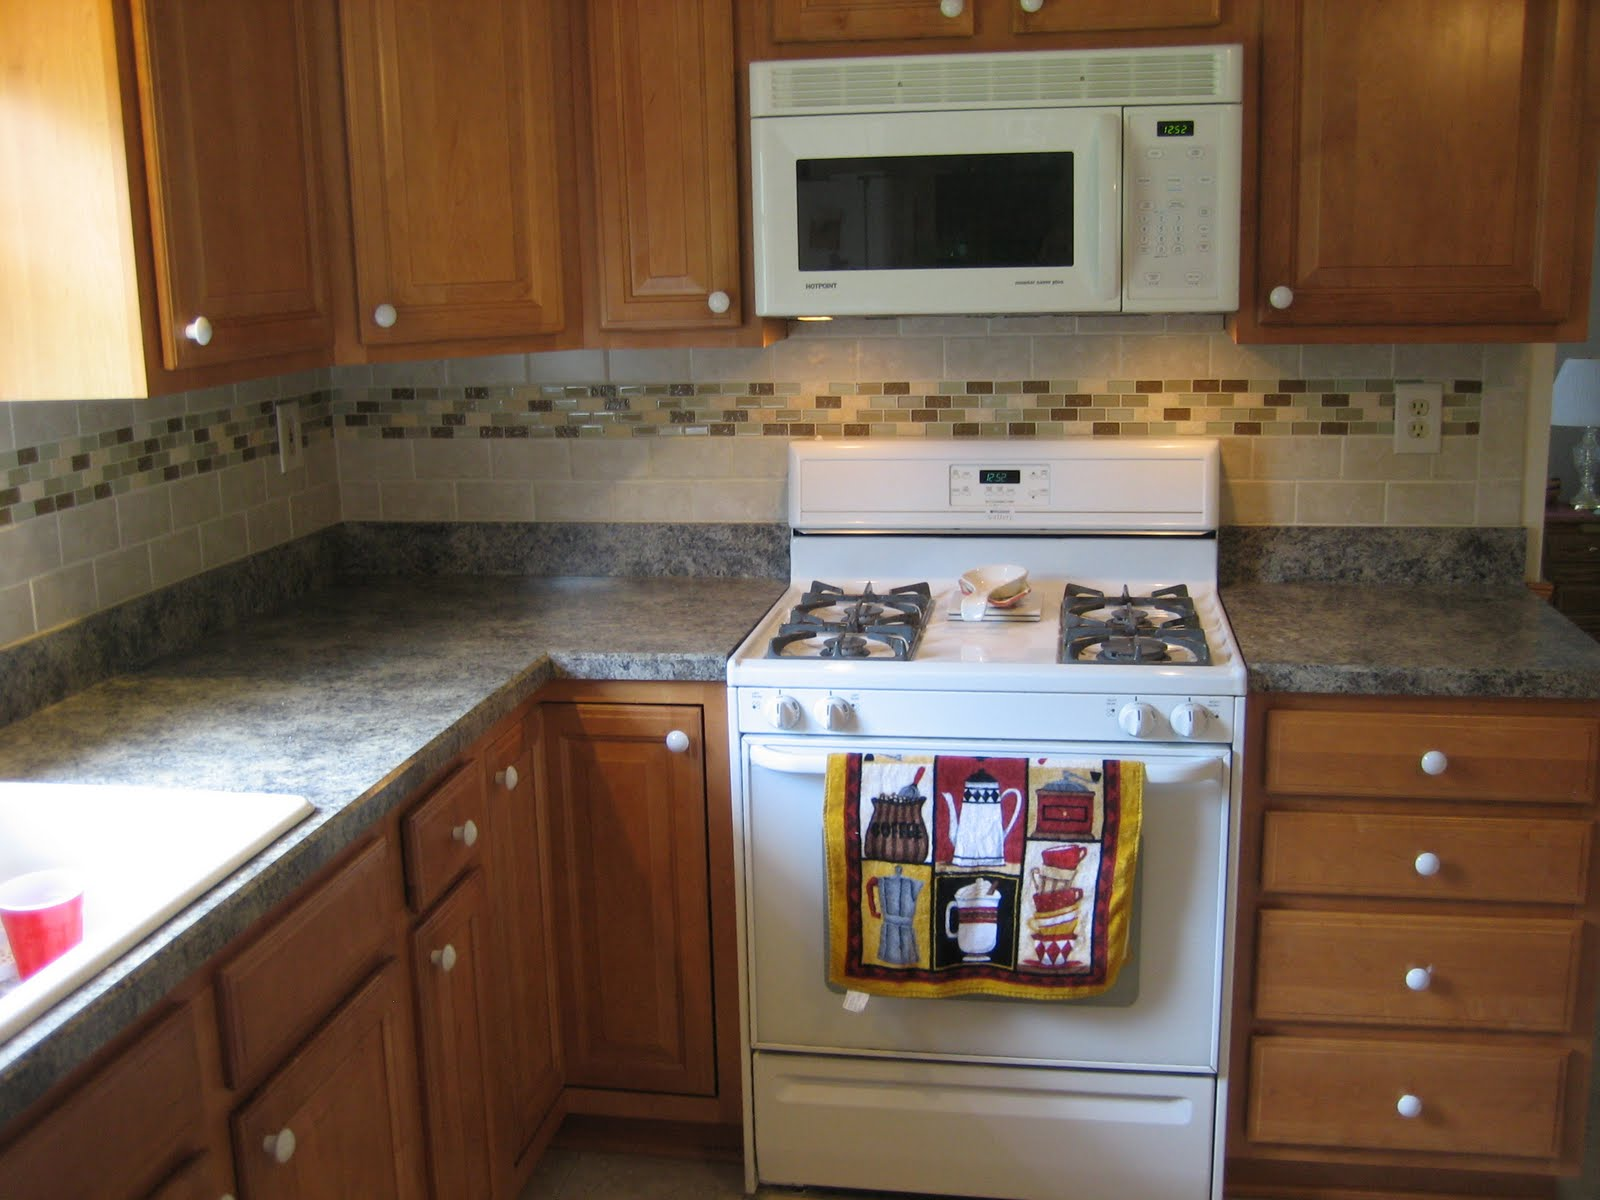 Ceramic tile kitchen backsplash designs Ceramic tile kitchen backsplash